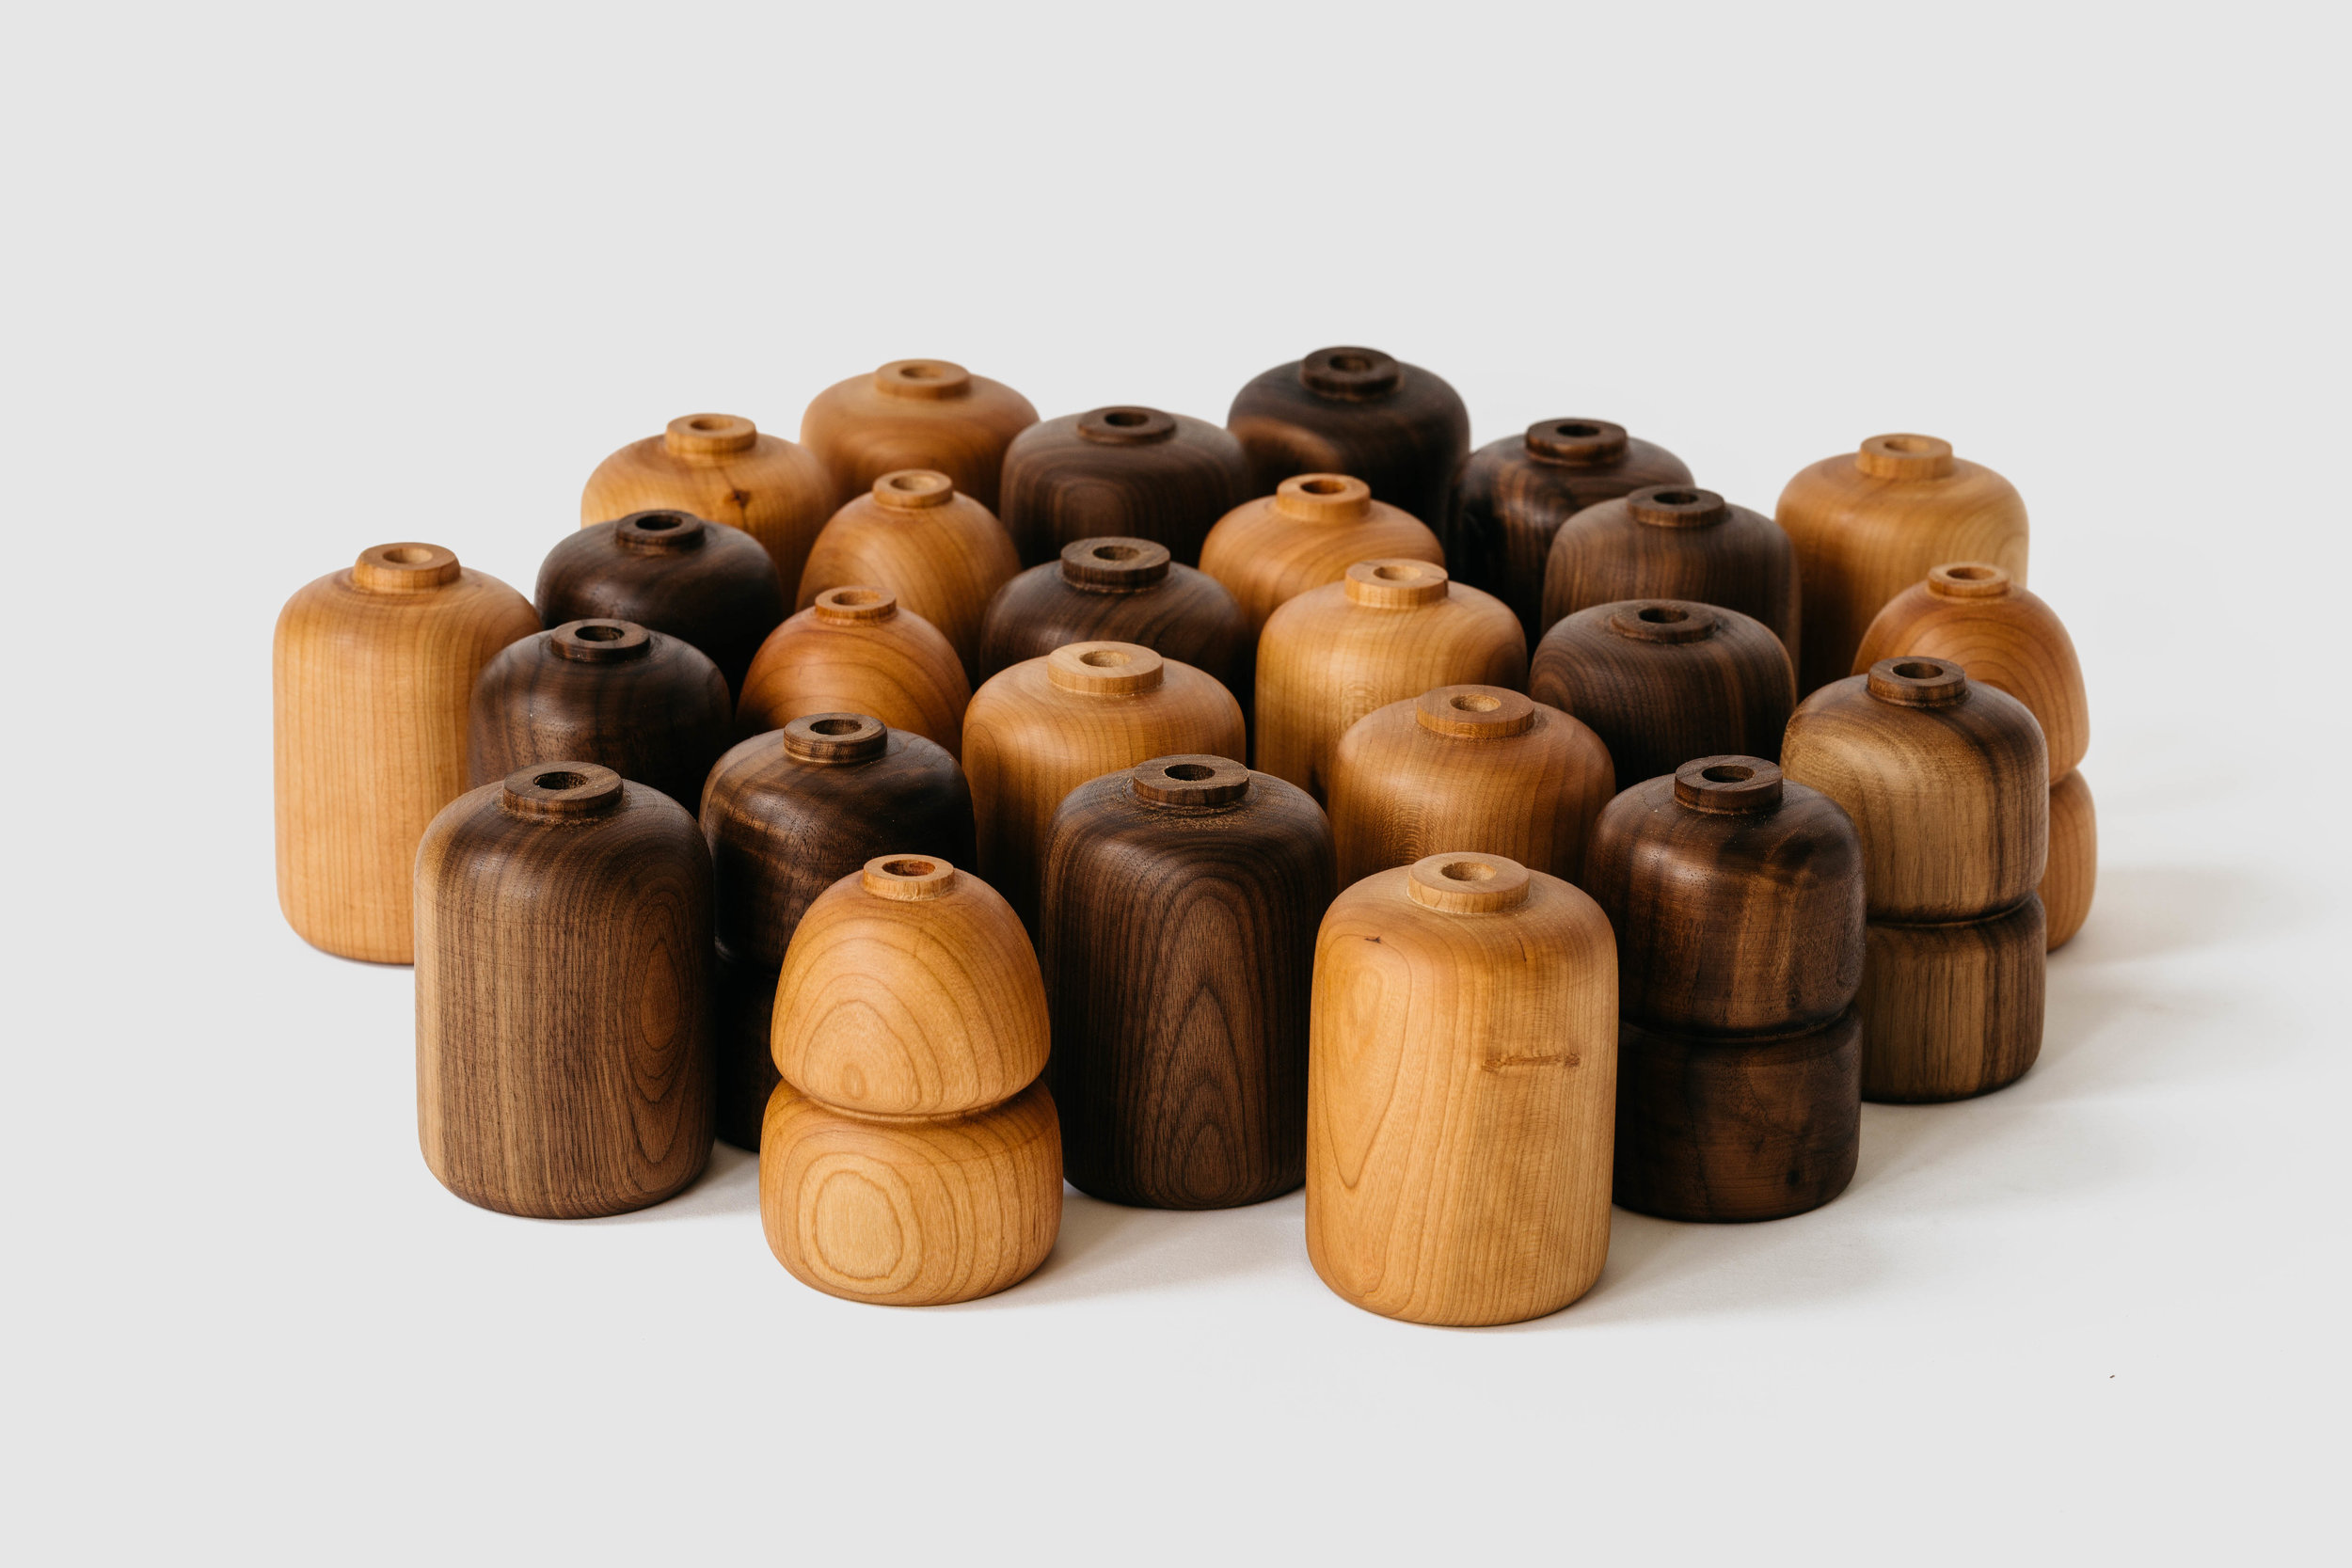 Hardwood Bud Vases   is a unique piece to for anyone that loves fresh flowers in their home. To make it even that much more special, give this gift together with flowers from a local florist!  $60-$75